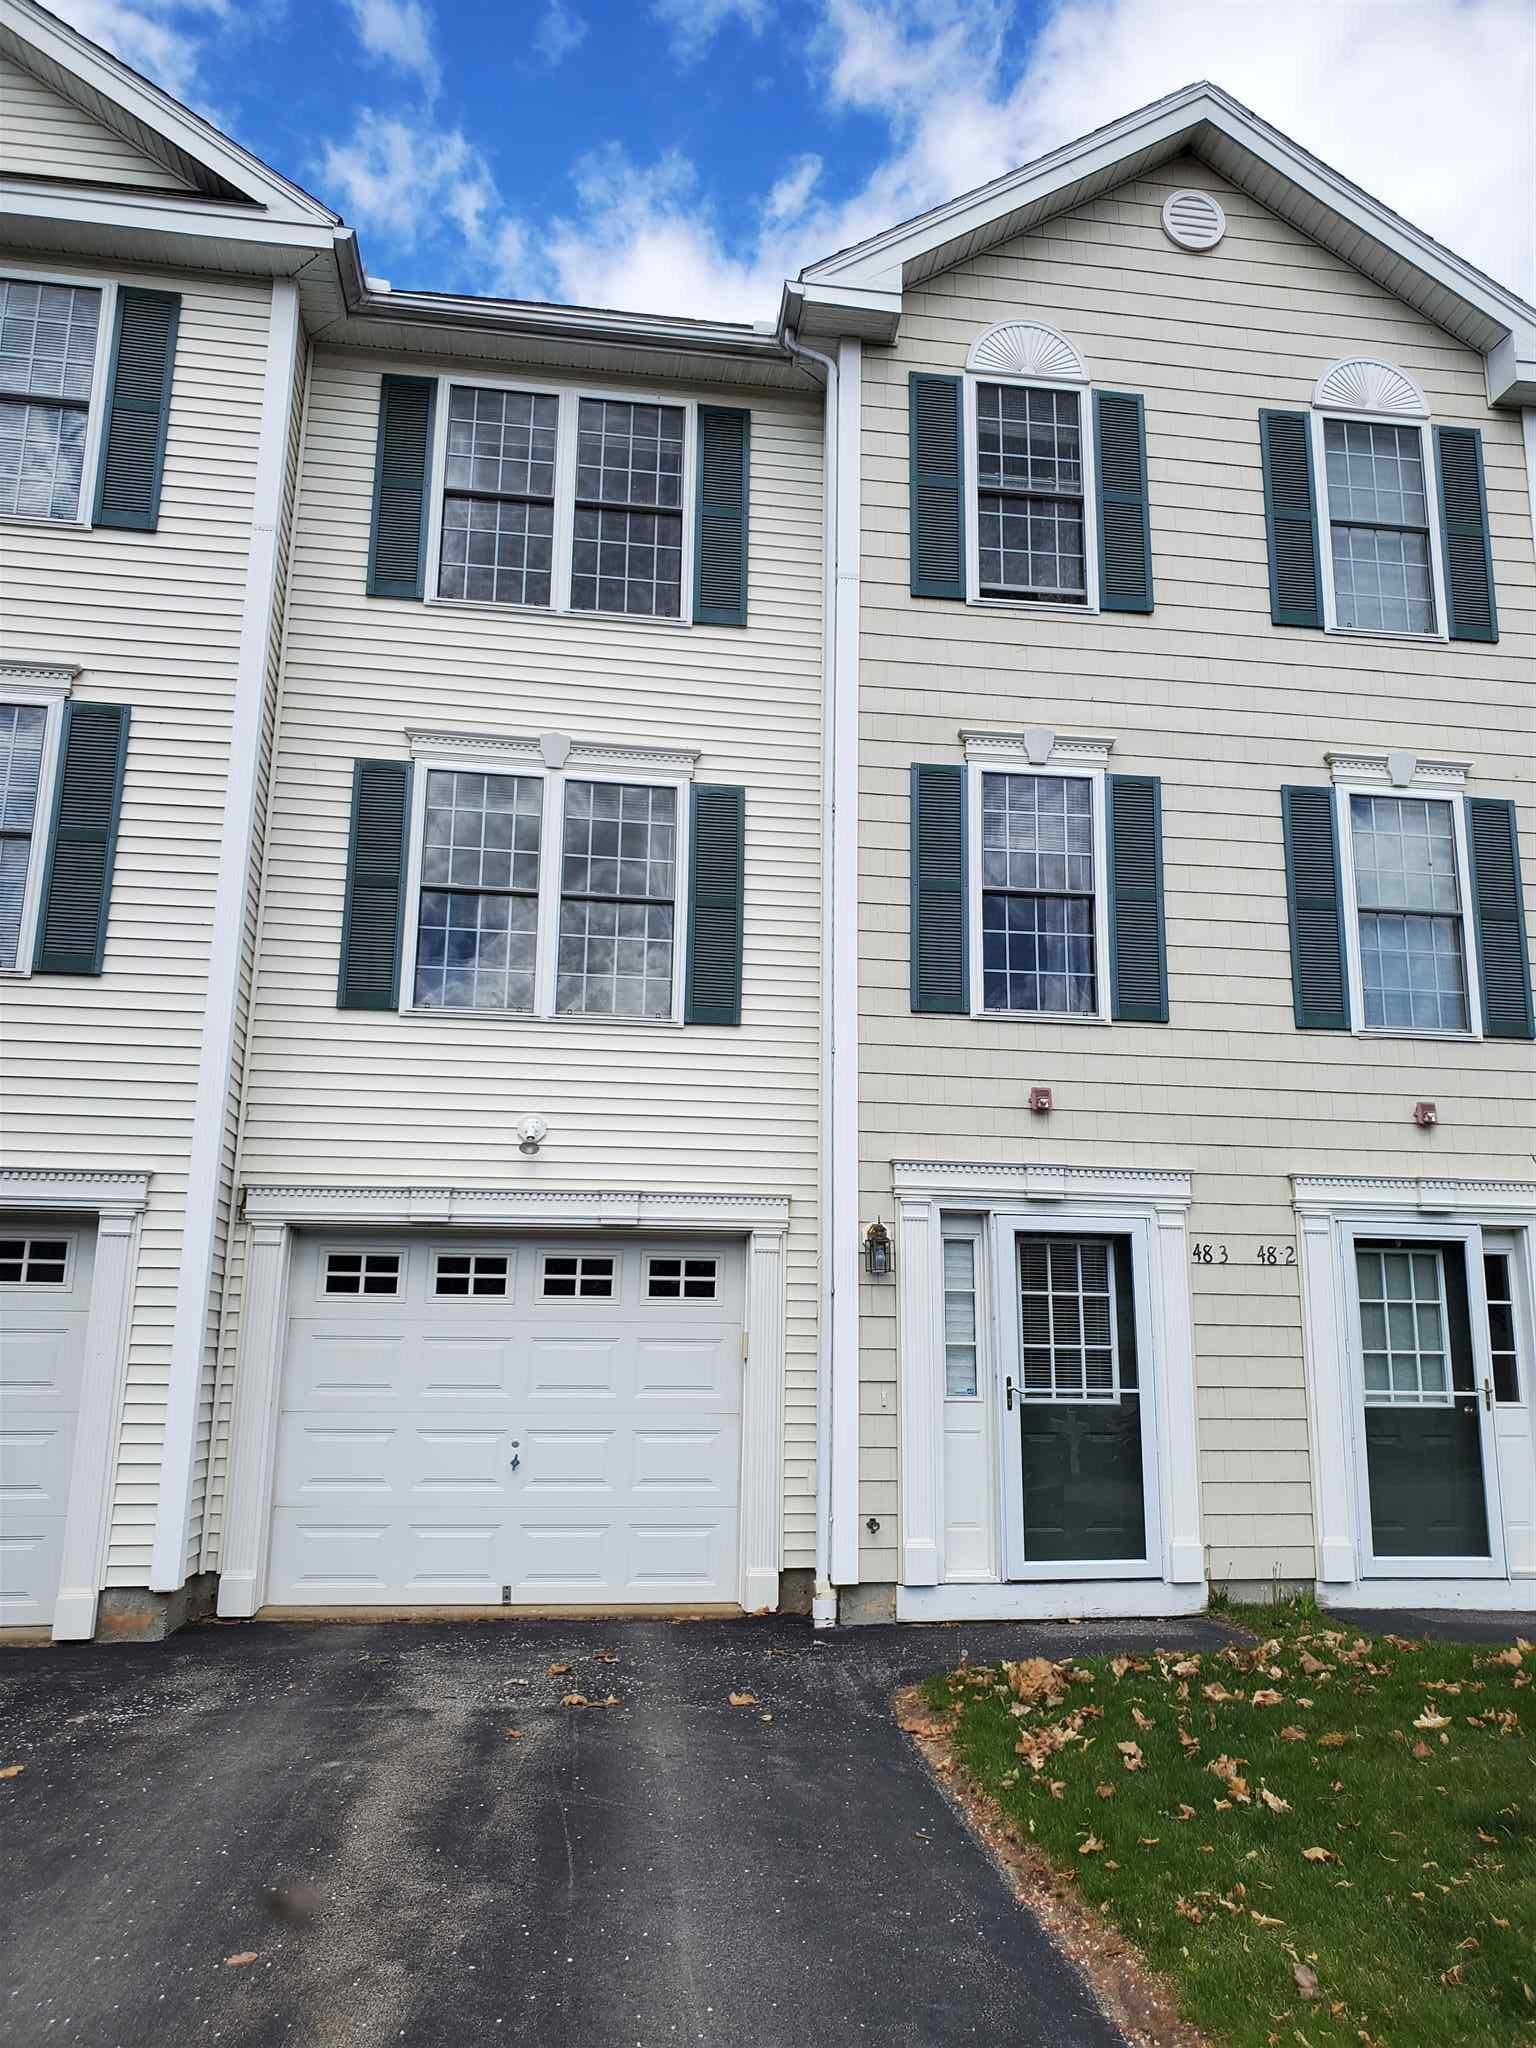 Photo of 48 Mulberry Street Concord NH 03301